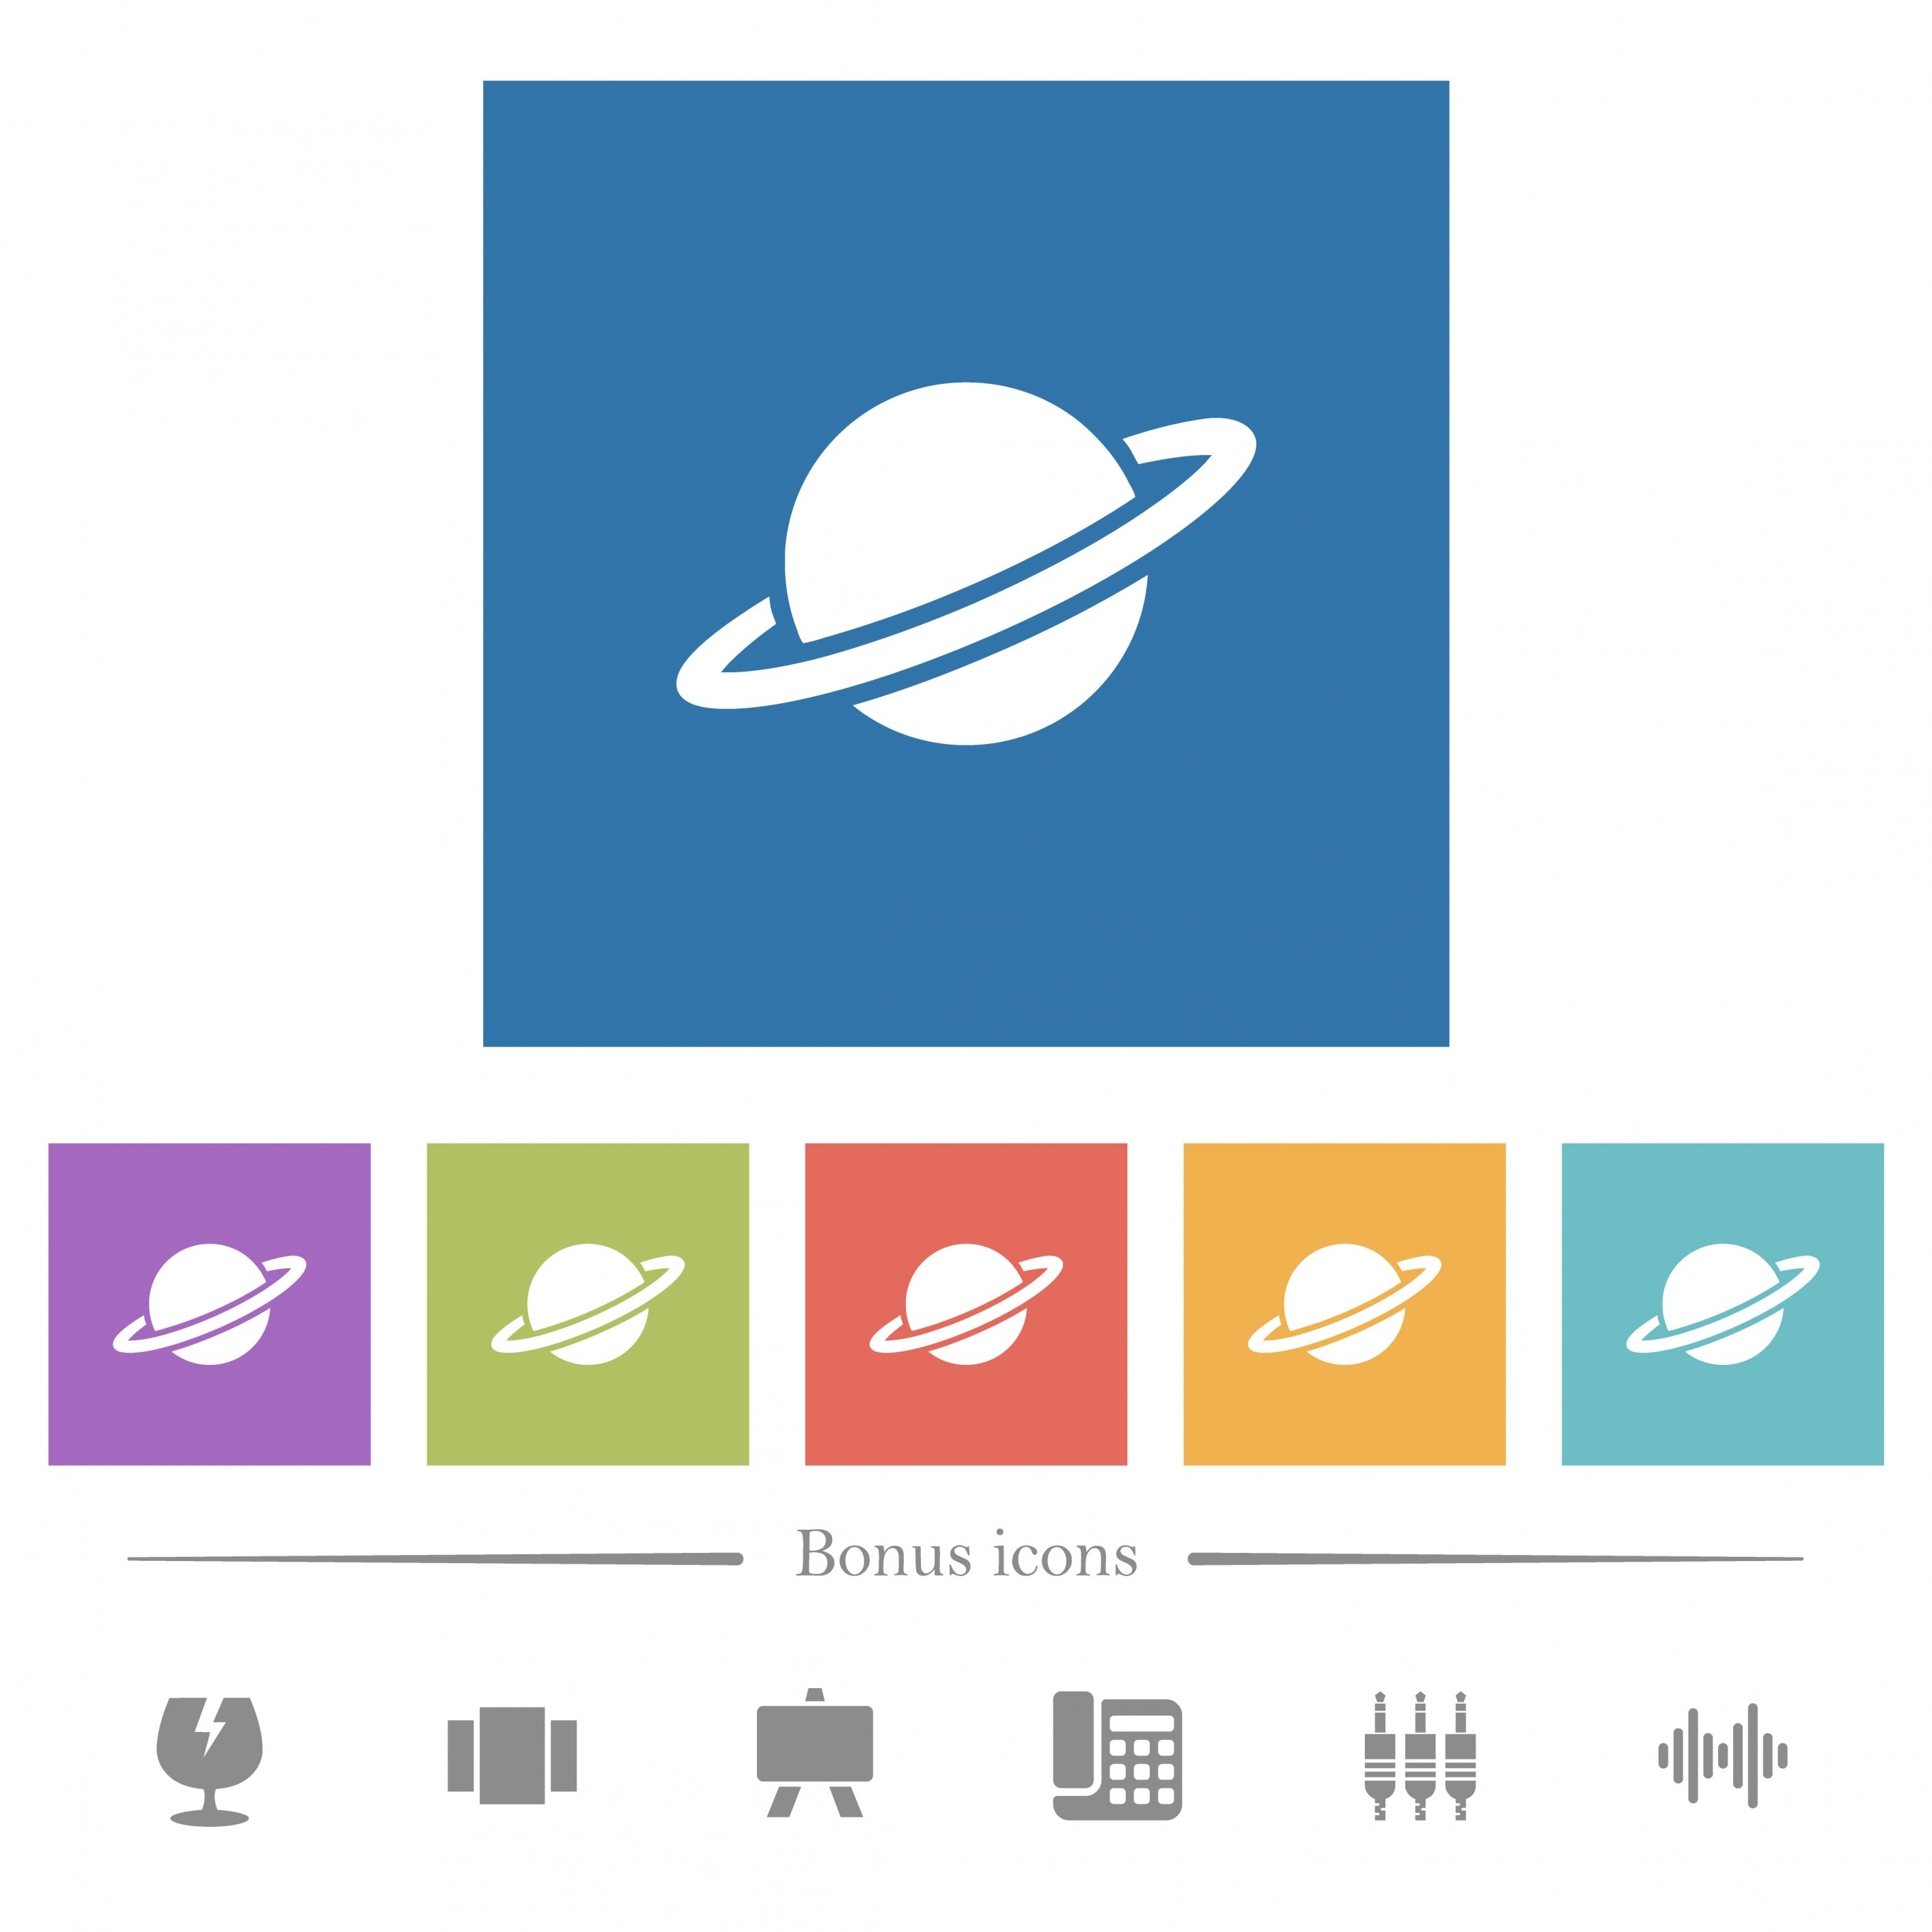 Planet flat white icons in square backgrounds. 6 bonus icons included. - Free image